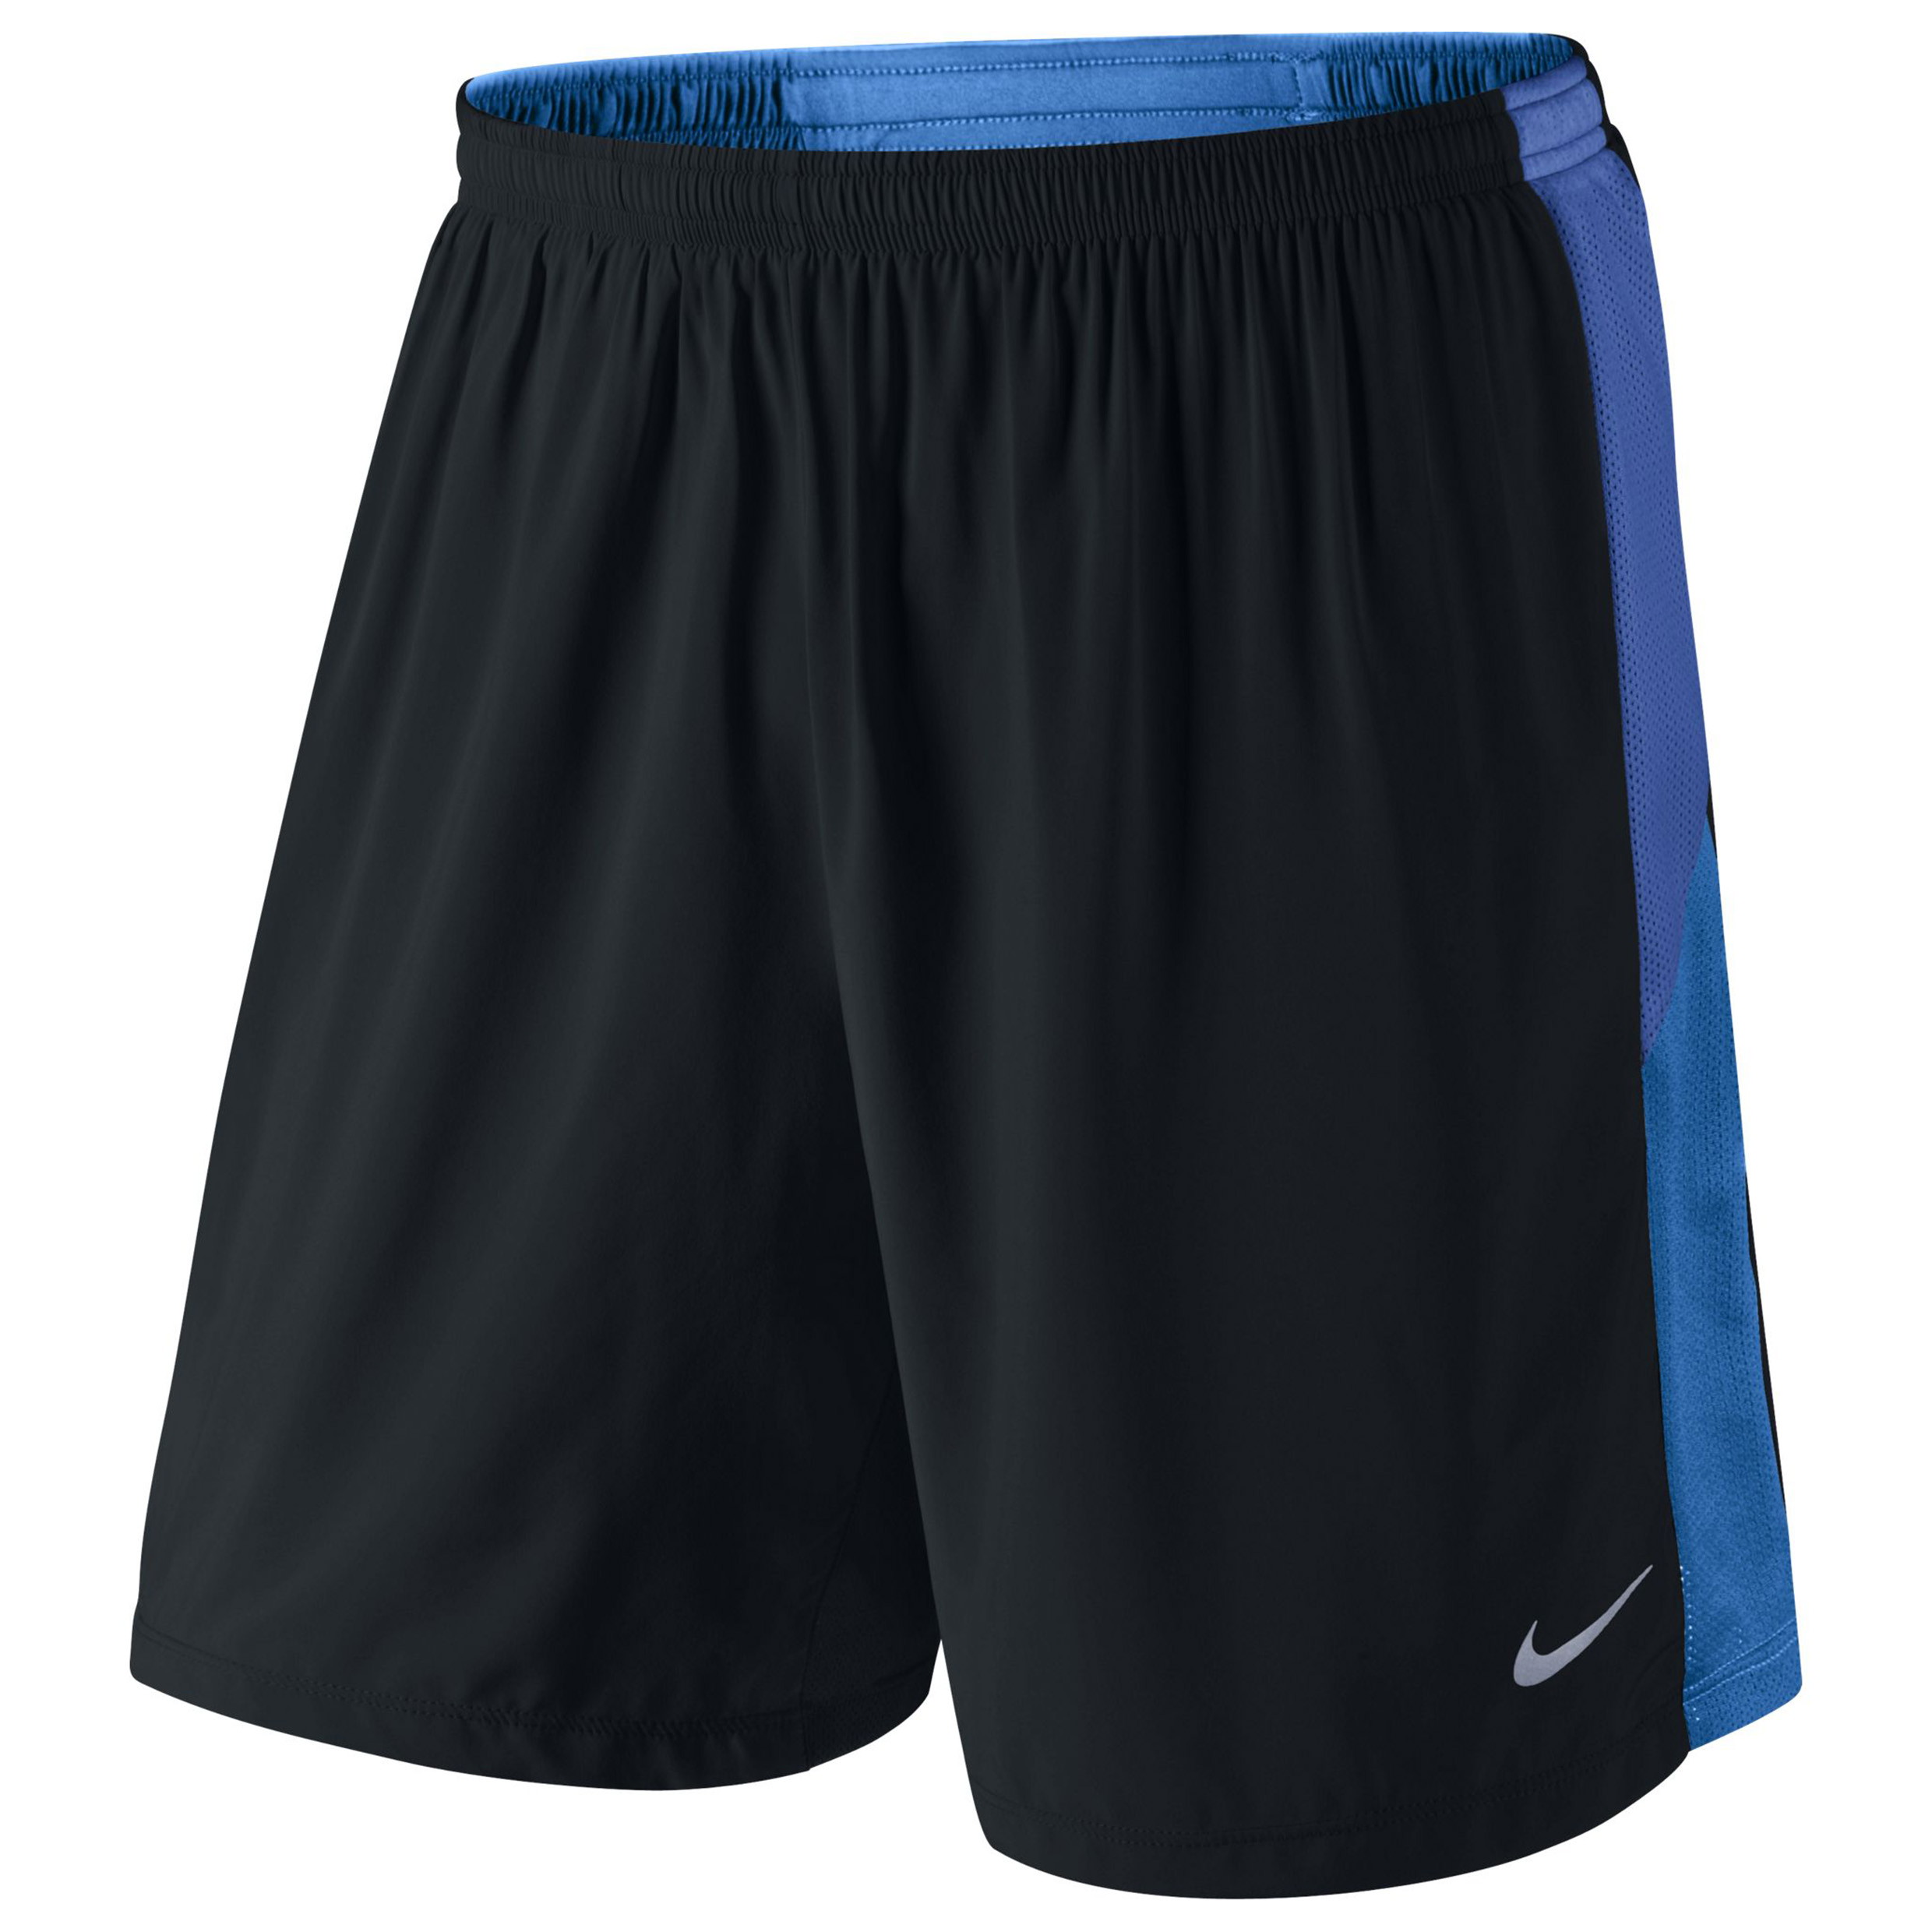 Nike Pursuit 7in 2-in-1 Shorts Black